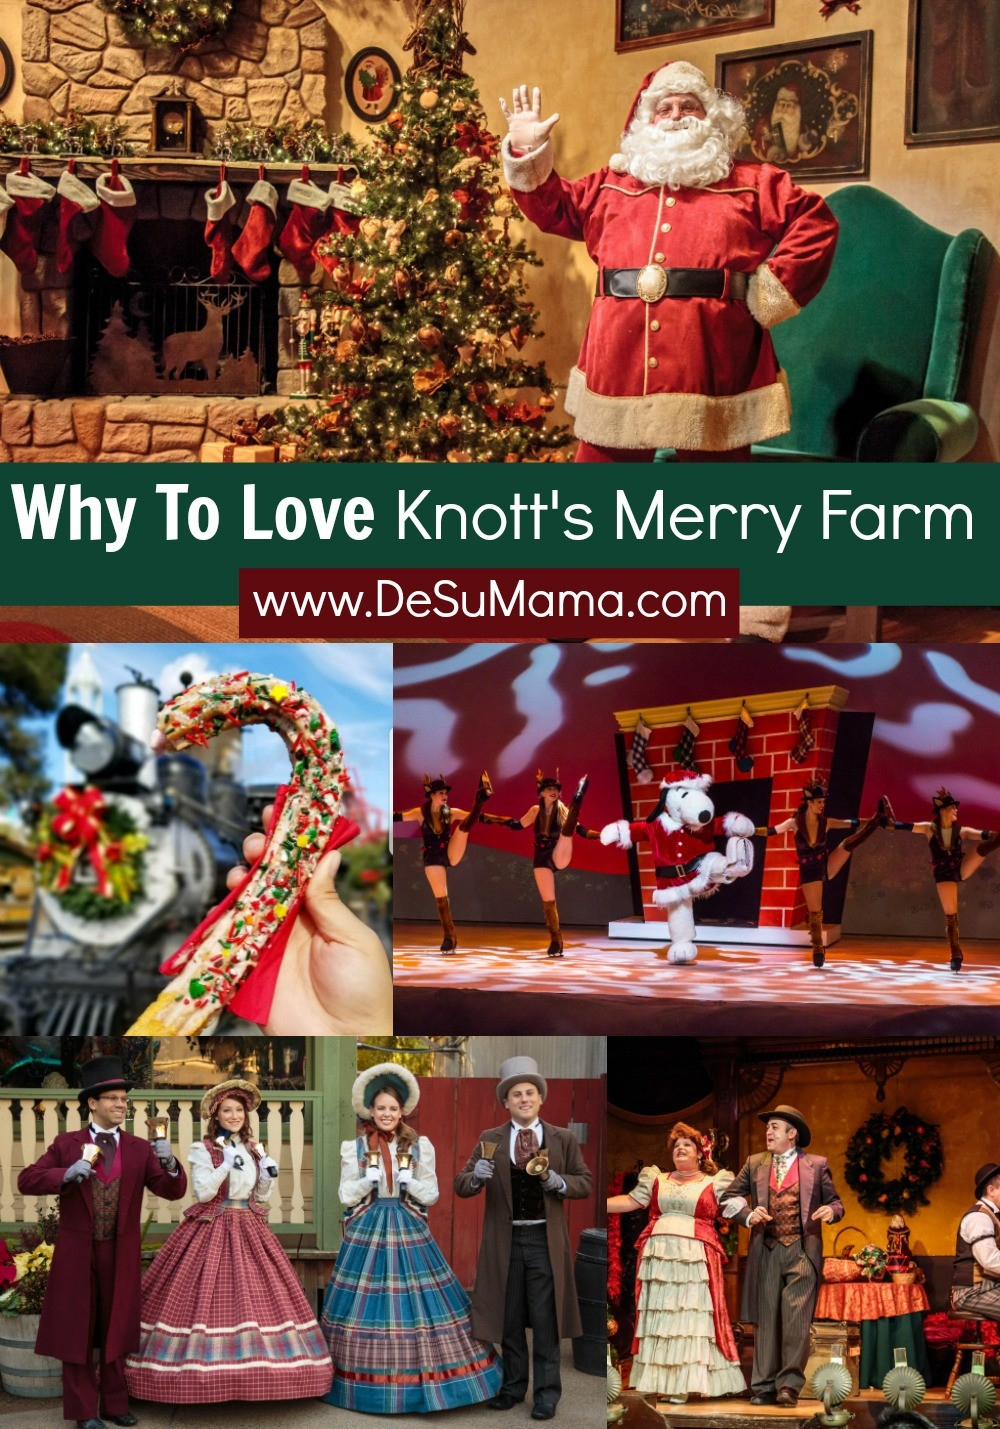 What To Love About Knotts Merry Farm